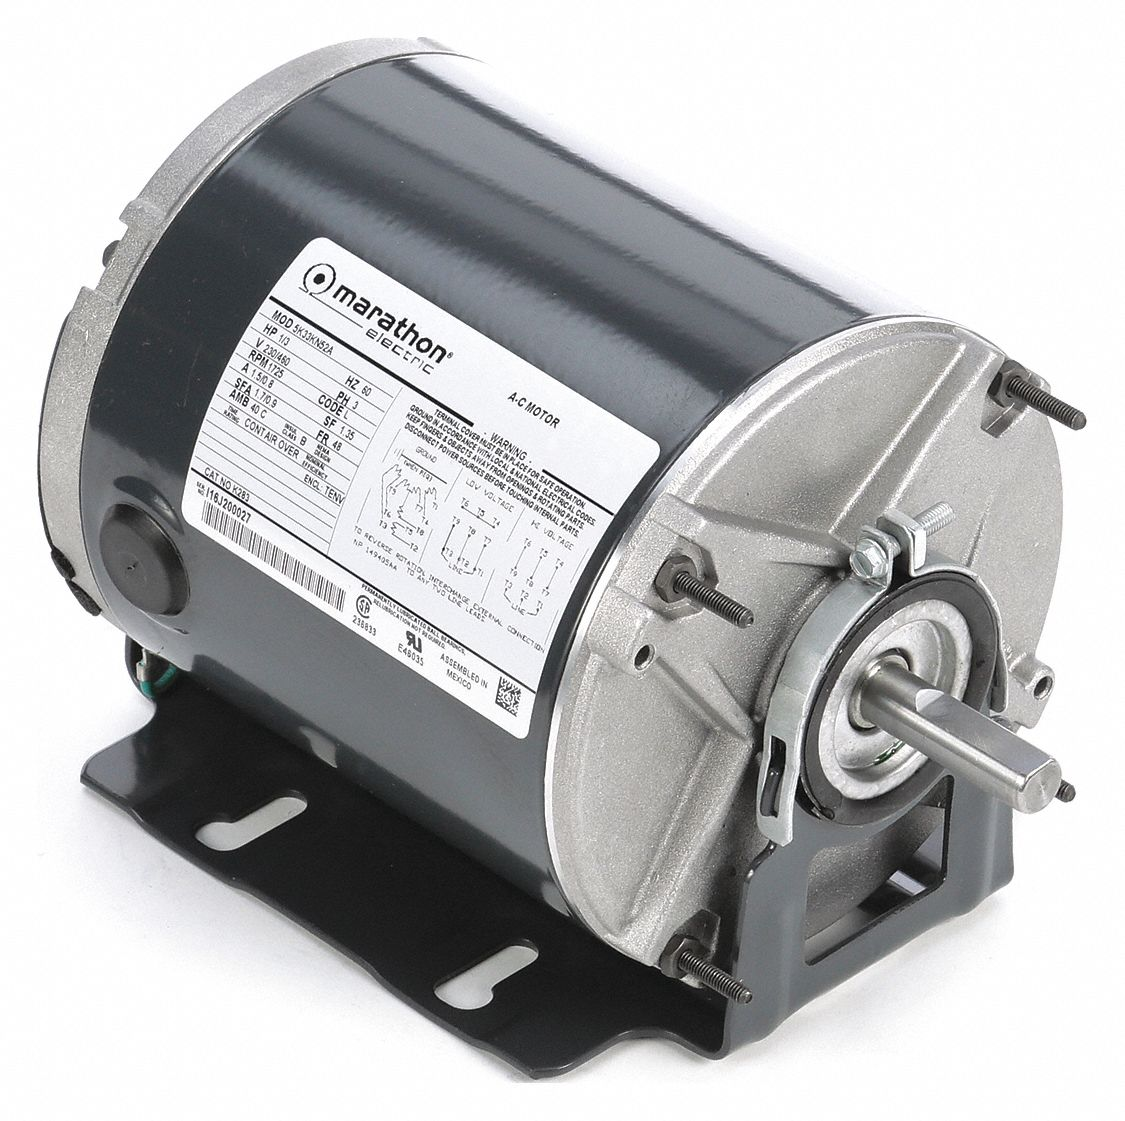 MARATHON MOTORS 1/3 HP Belt Drive Motor, 3-Phase, 1725 Nameplate RPM,  230/460 Voltage, Frame 48 - 403T96|5K33KN52 - GraingerGrainger